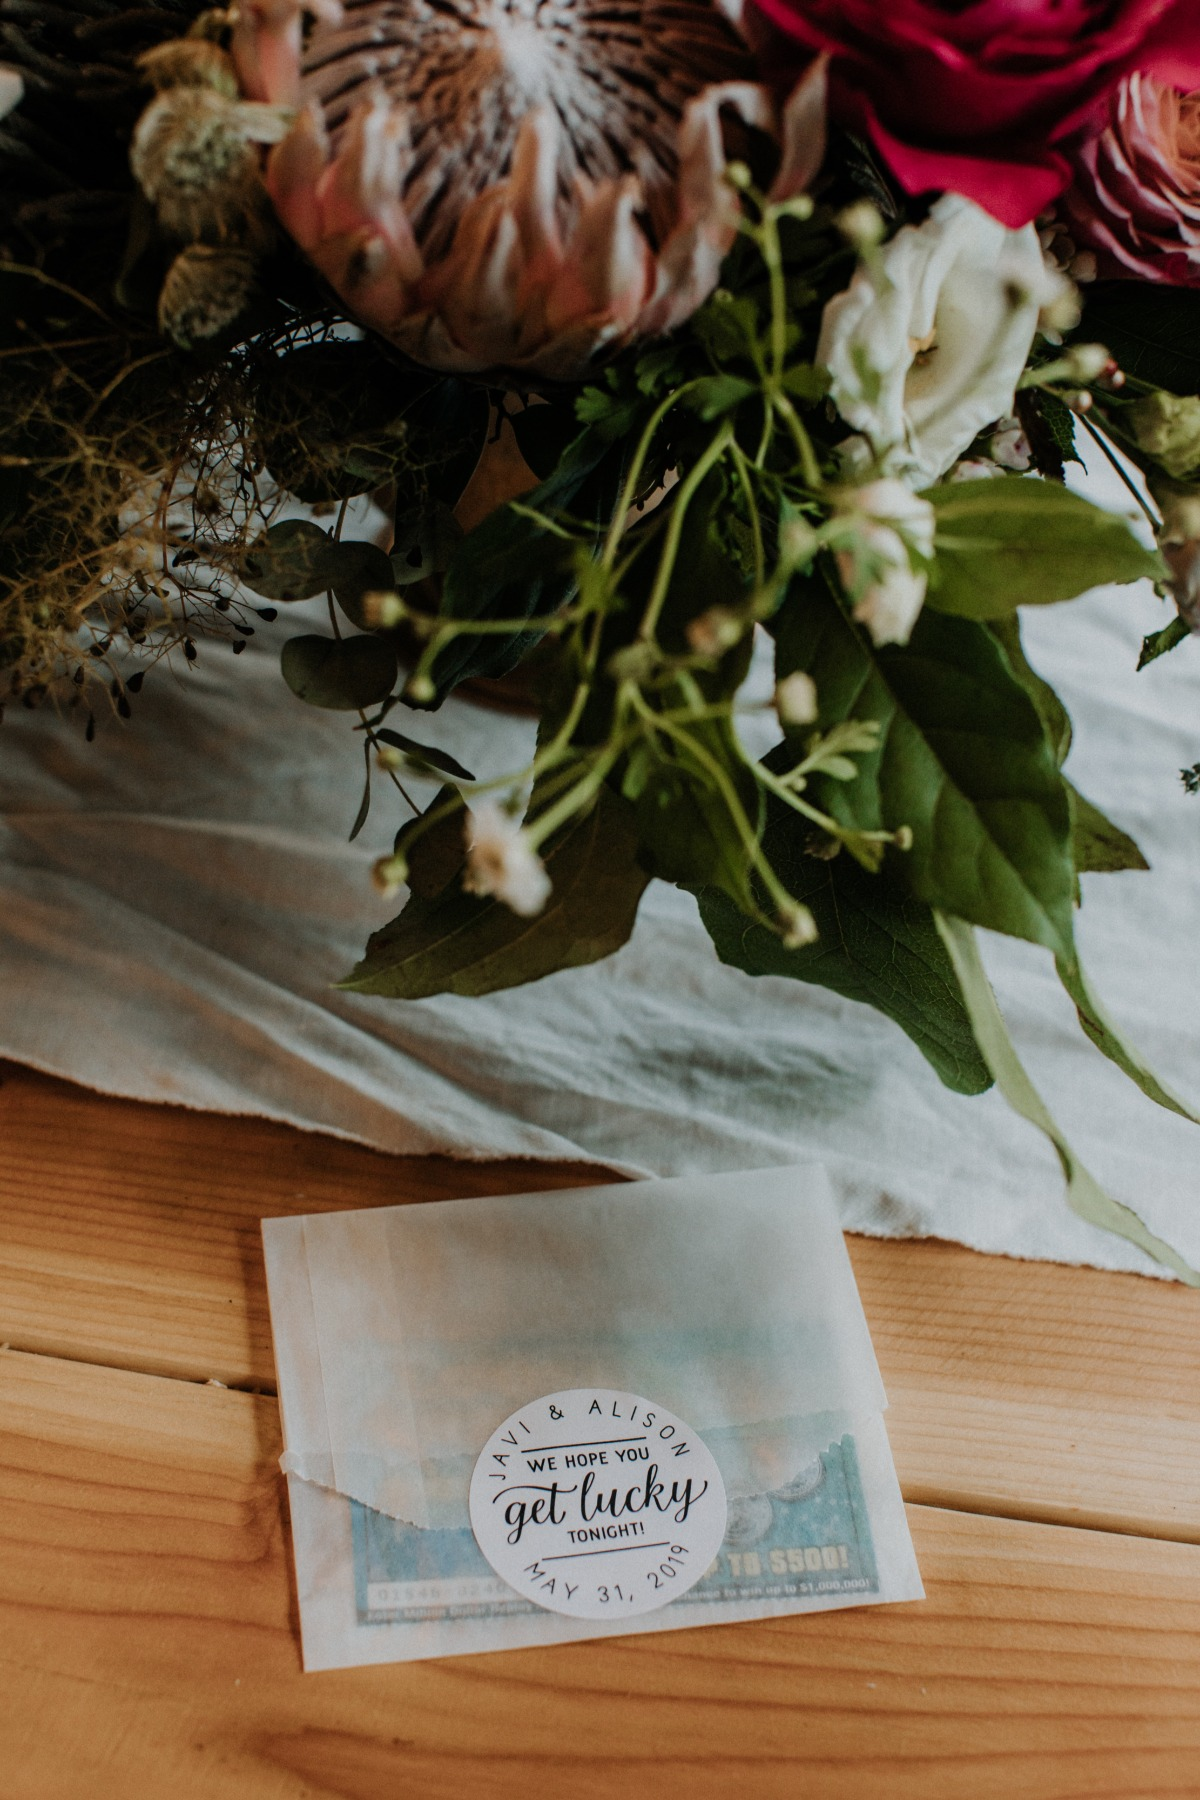 lotto tickets as wedding favors